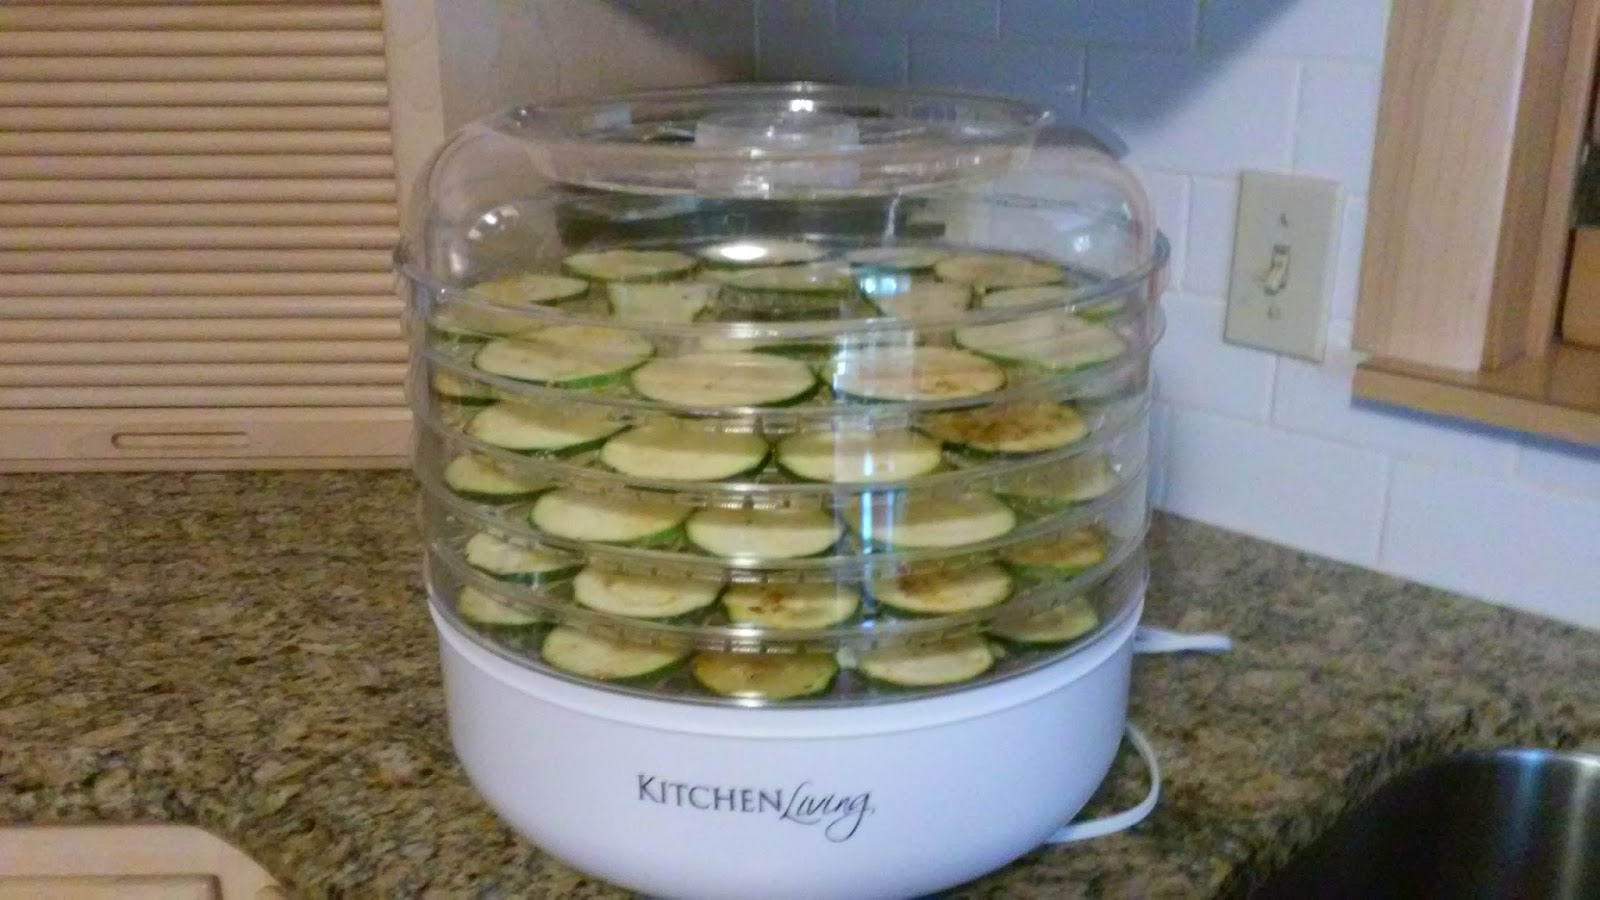 Kitchen Living Food Dehydrator Aldi